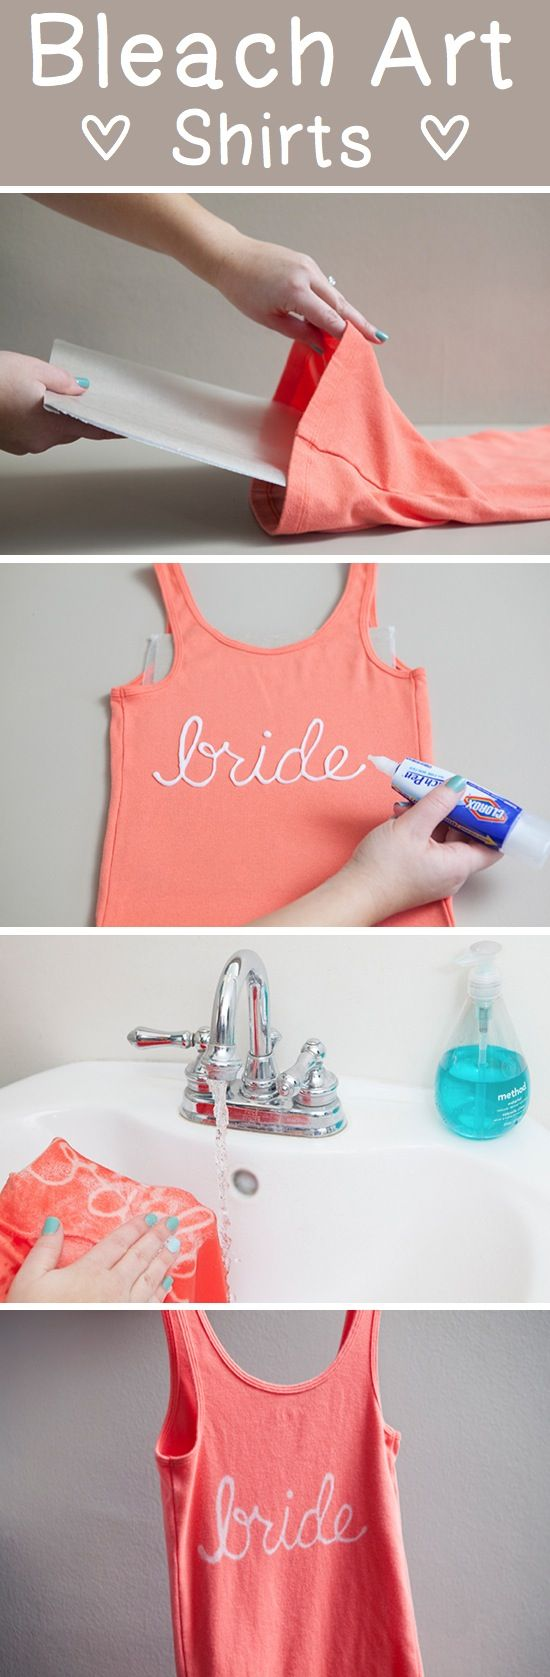 #Clorox #bleach #pen to make your own shirt designs! #designs #shirt #tee #tshirt #tank #crafts #bleachpen #cleaningsupplies #tutorial #gifts #fun #DIY #gifts